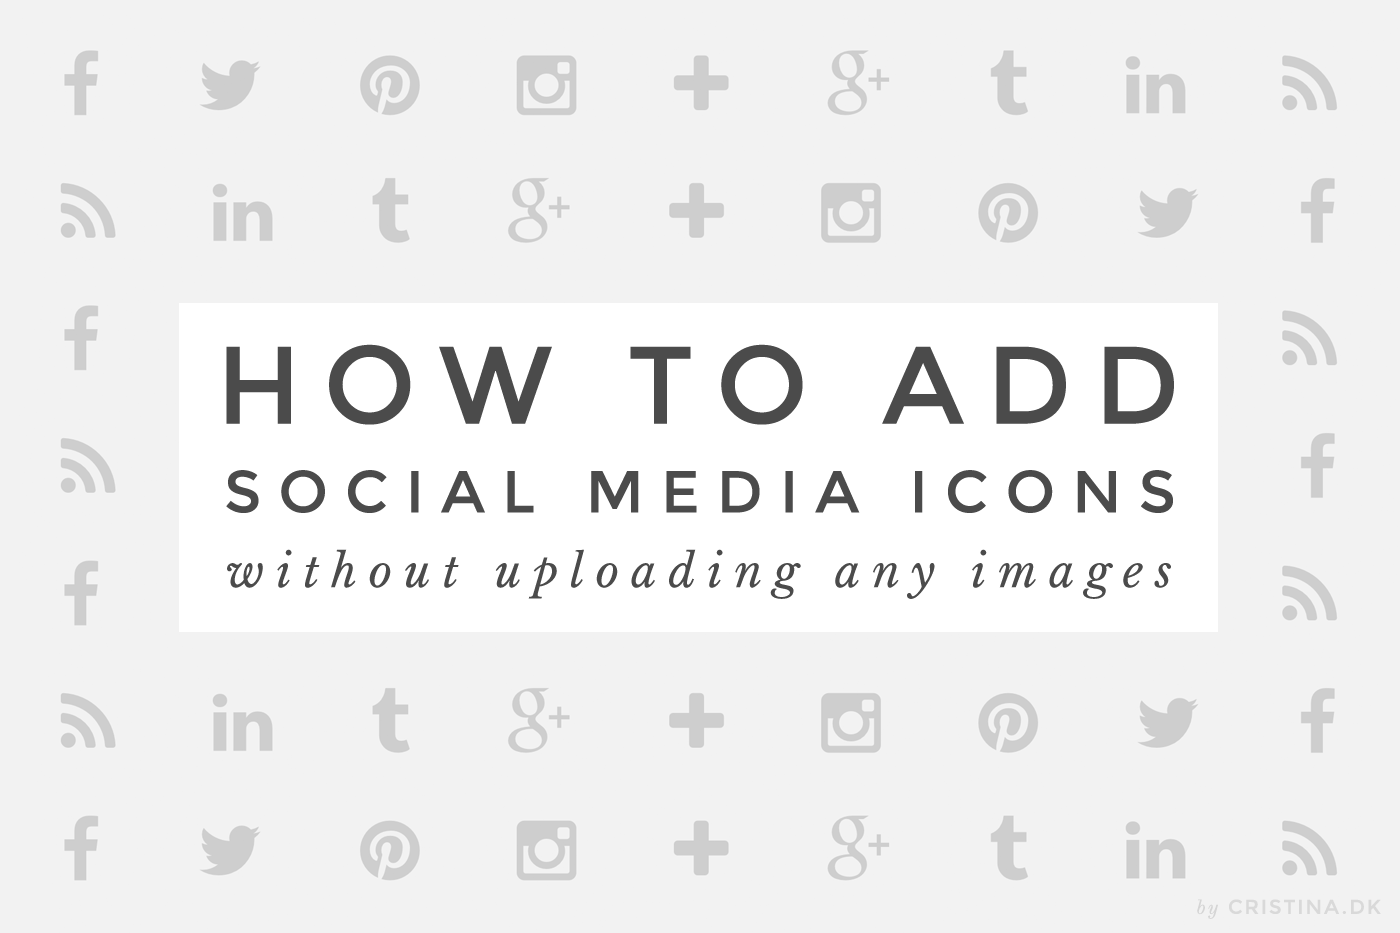 How to add social media buttons without uploading images